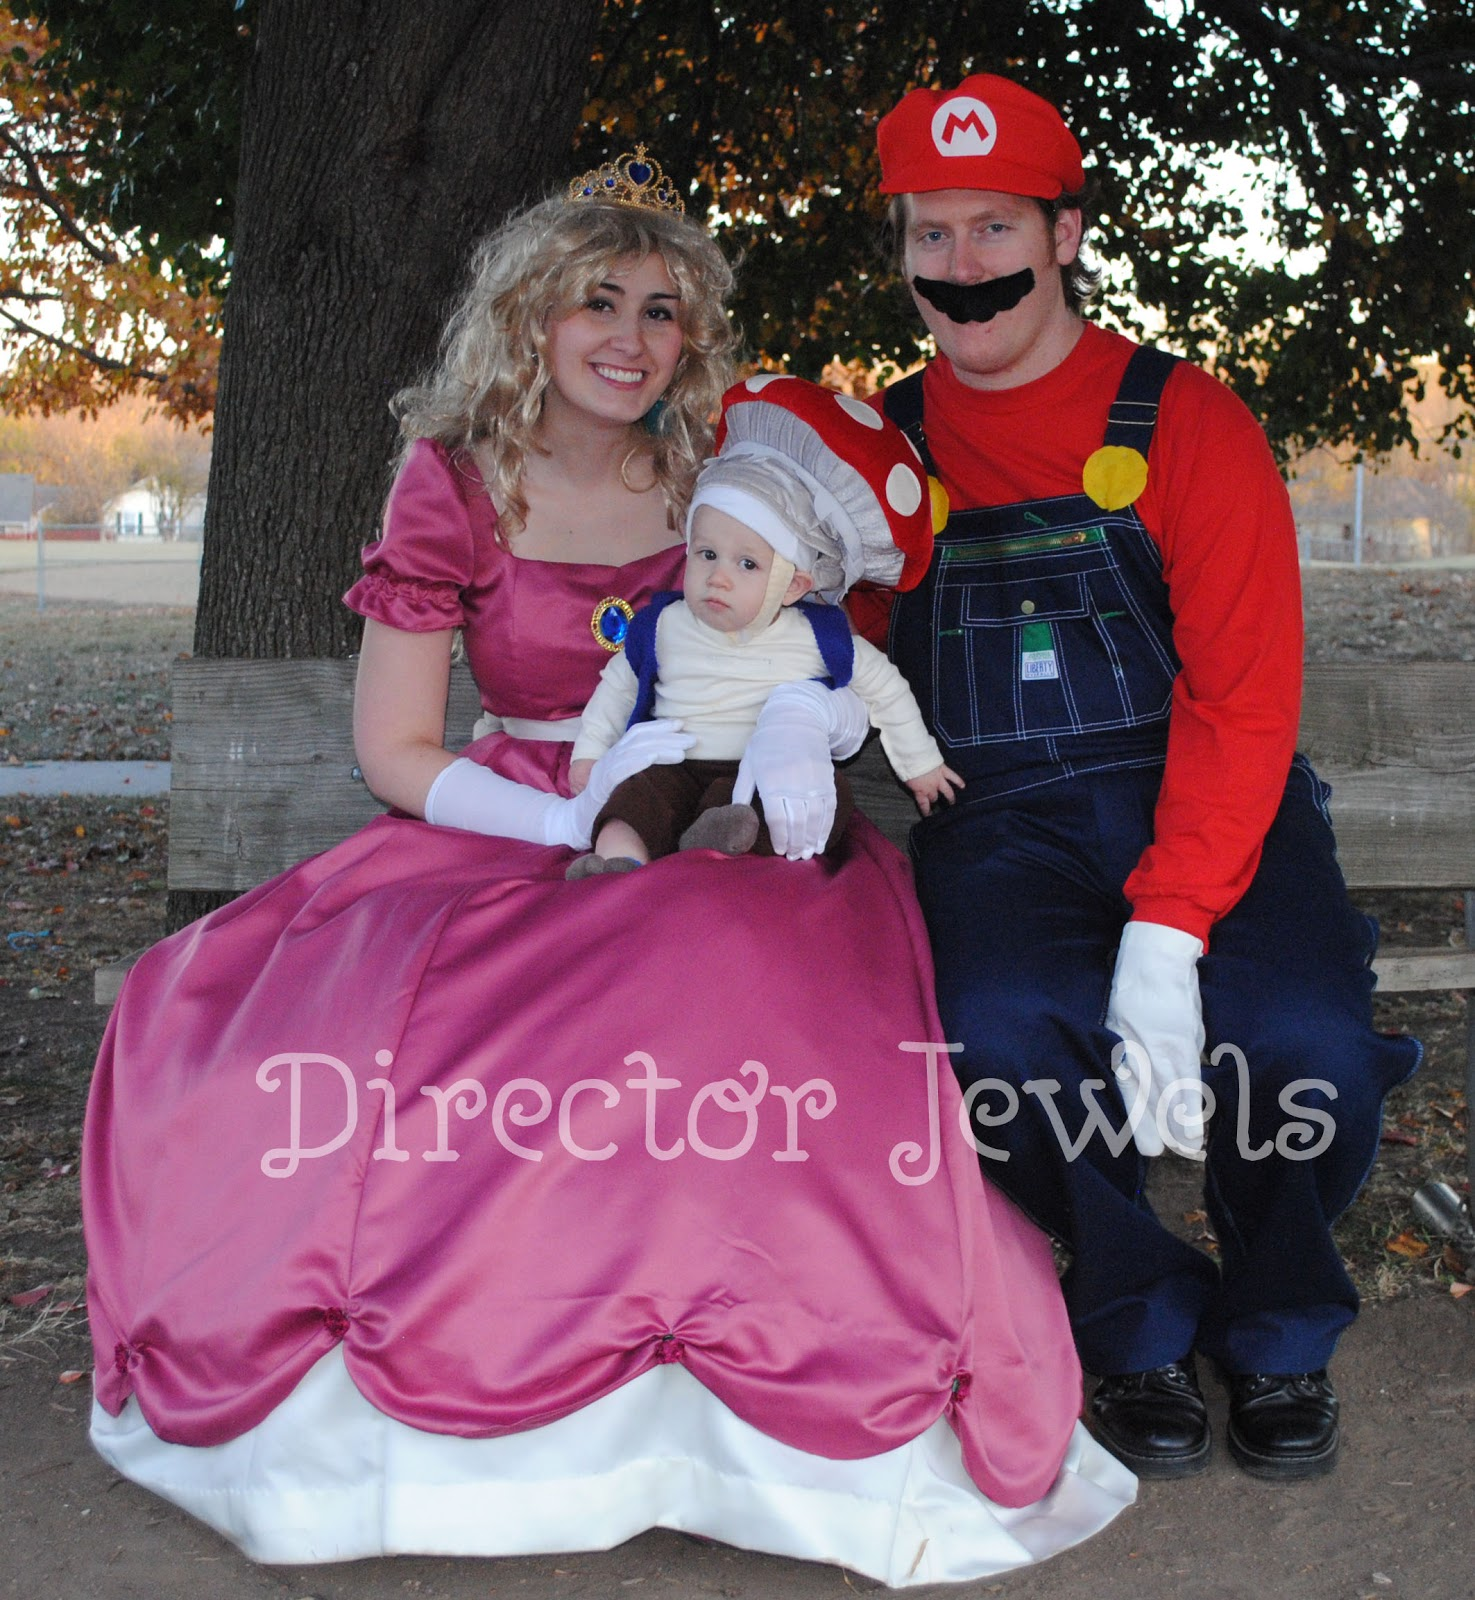 I was a bit of a blogging slacker last year around this time so our Halloween photos never quite made it into a post. I am currently brainstorming on what ...  sc 1 st  Director Jewels & Director Jewels: Itu0027s-a-Nintendo Super Mario Brothers Halloween!